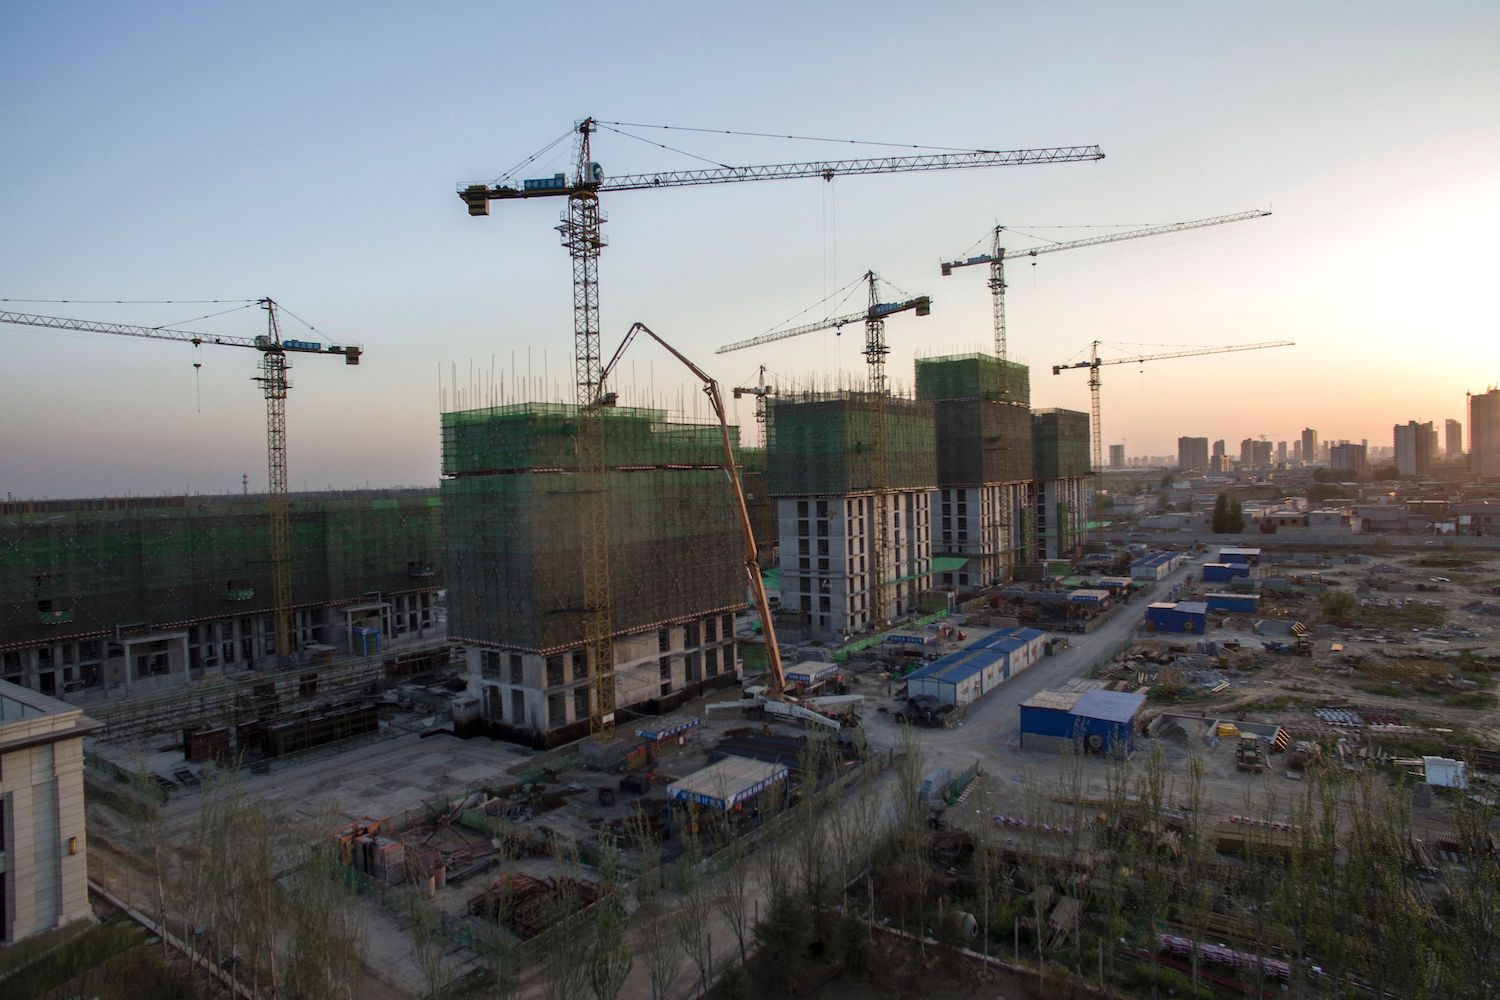 A construction site is pictured in Baoding, China, on April 25, 2017.